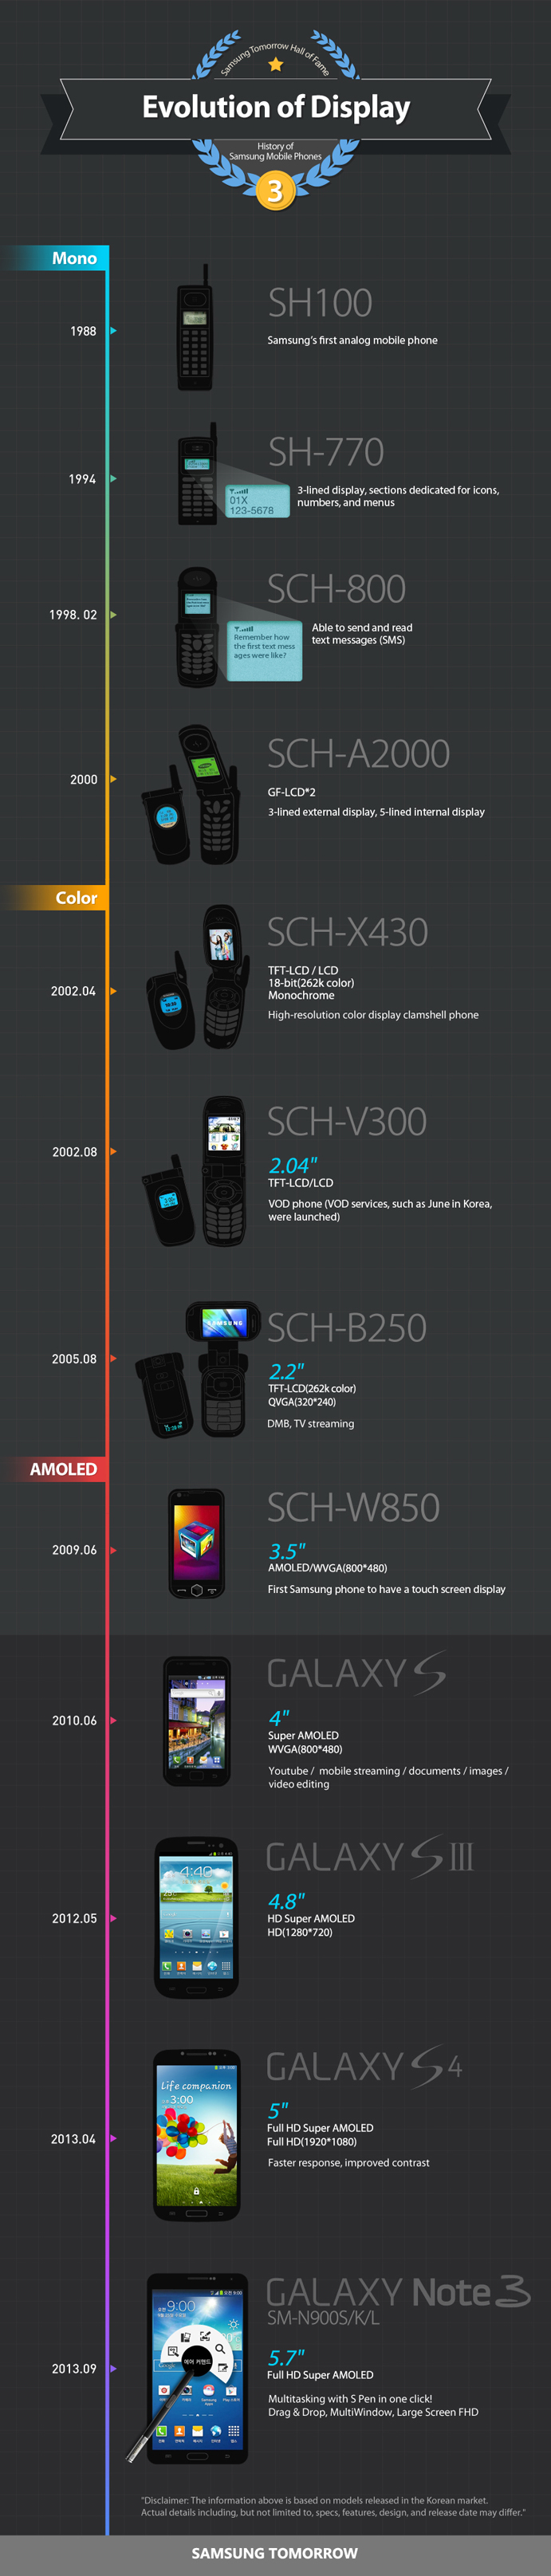 Infographic-History-of-Samsung-Mobile-Phones-Evolution-of-Display